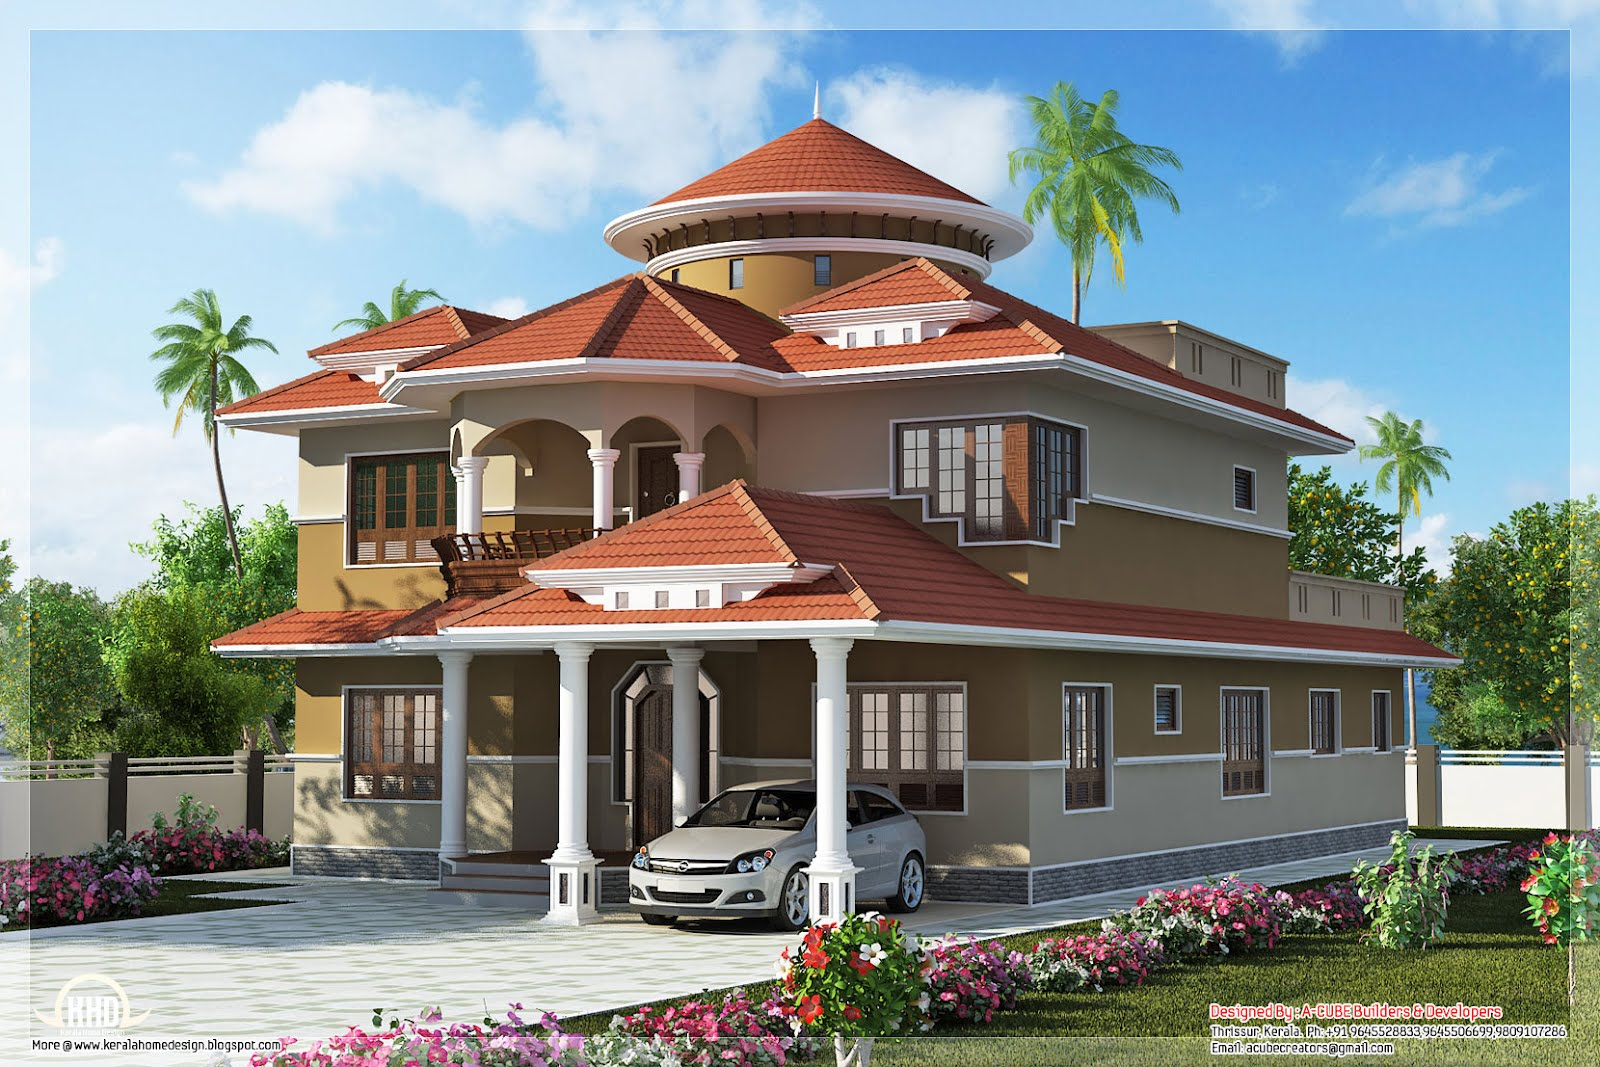 Beautiful dream home design in 2800 sq.feet - Kerala home design